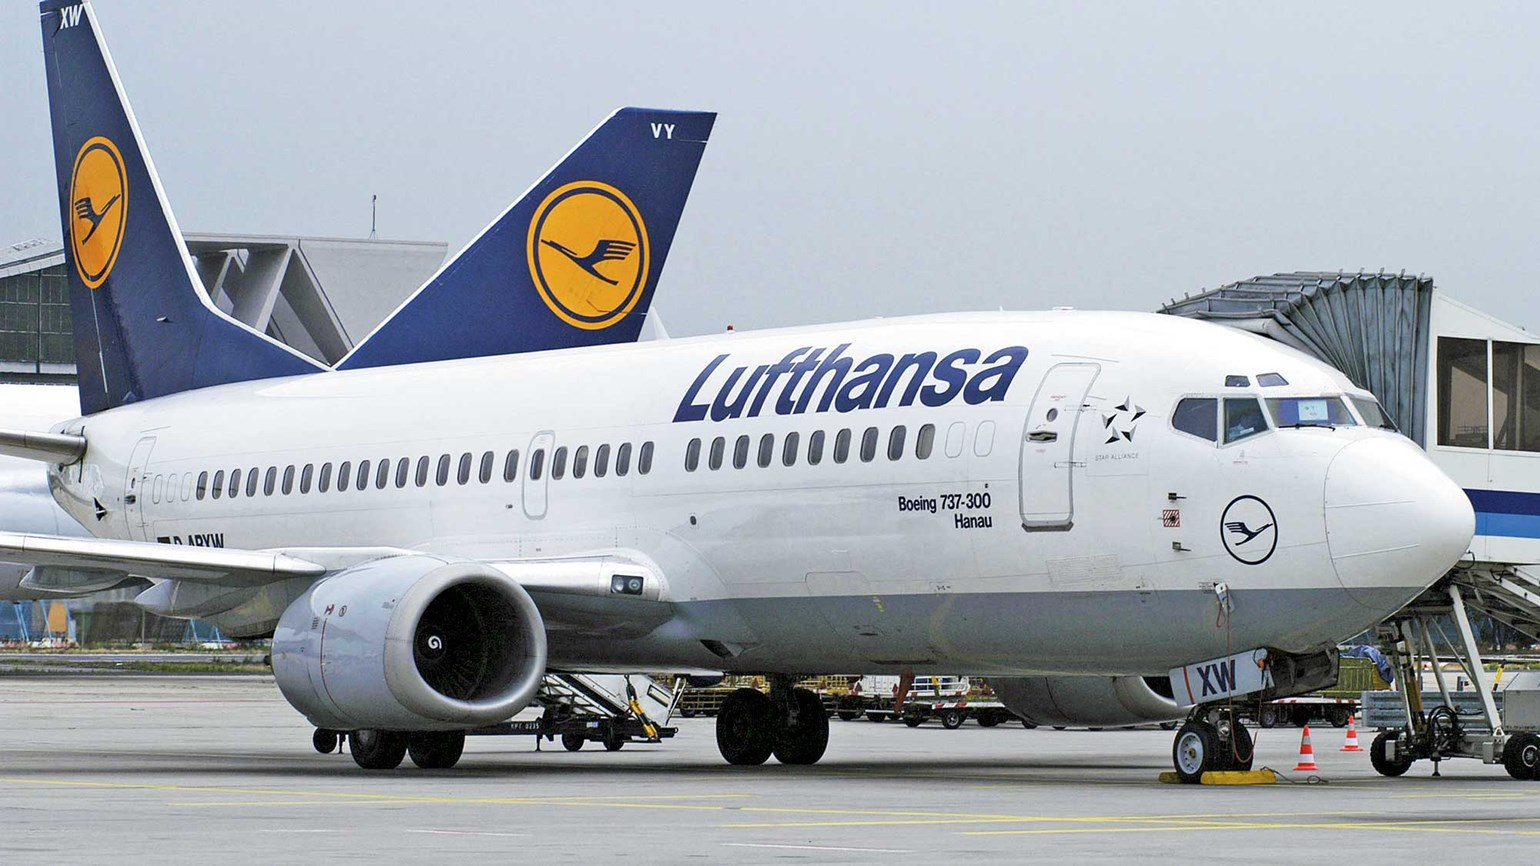 Lufthansa direct connect gives Expedia access to discounted fares